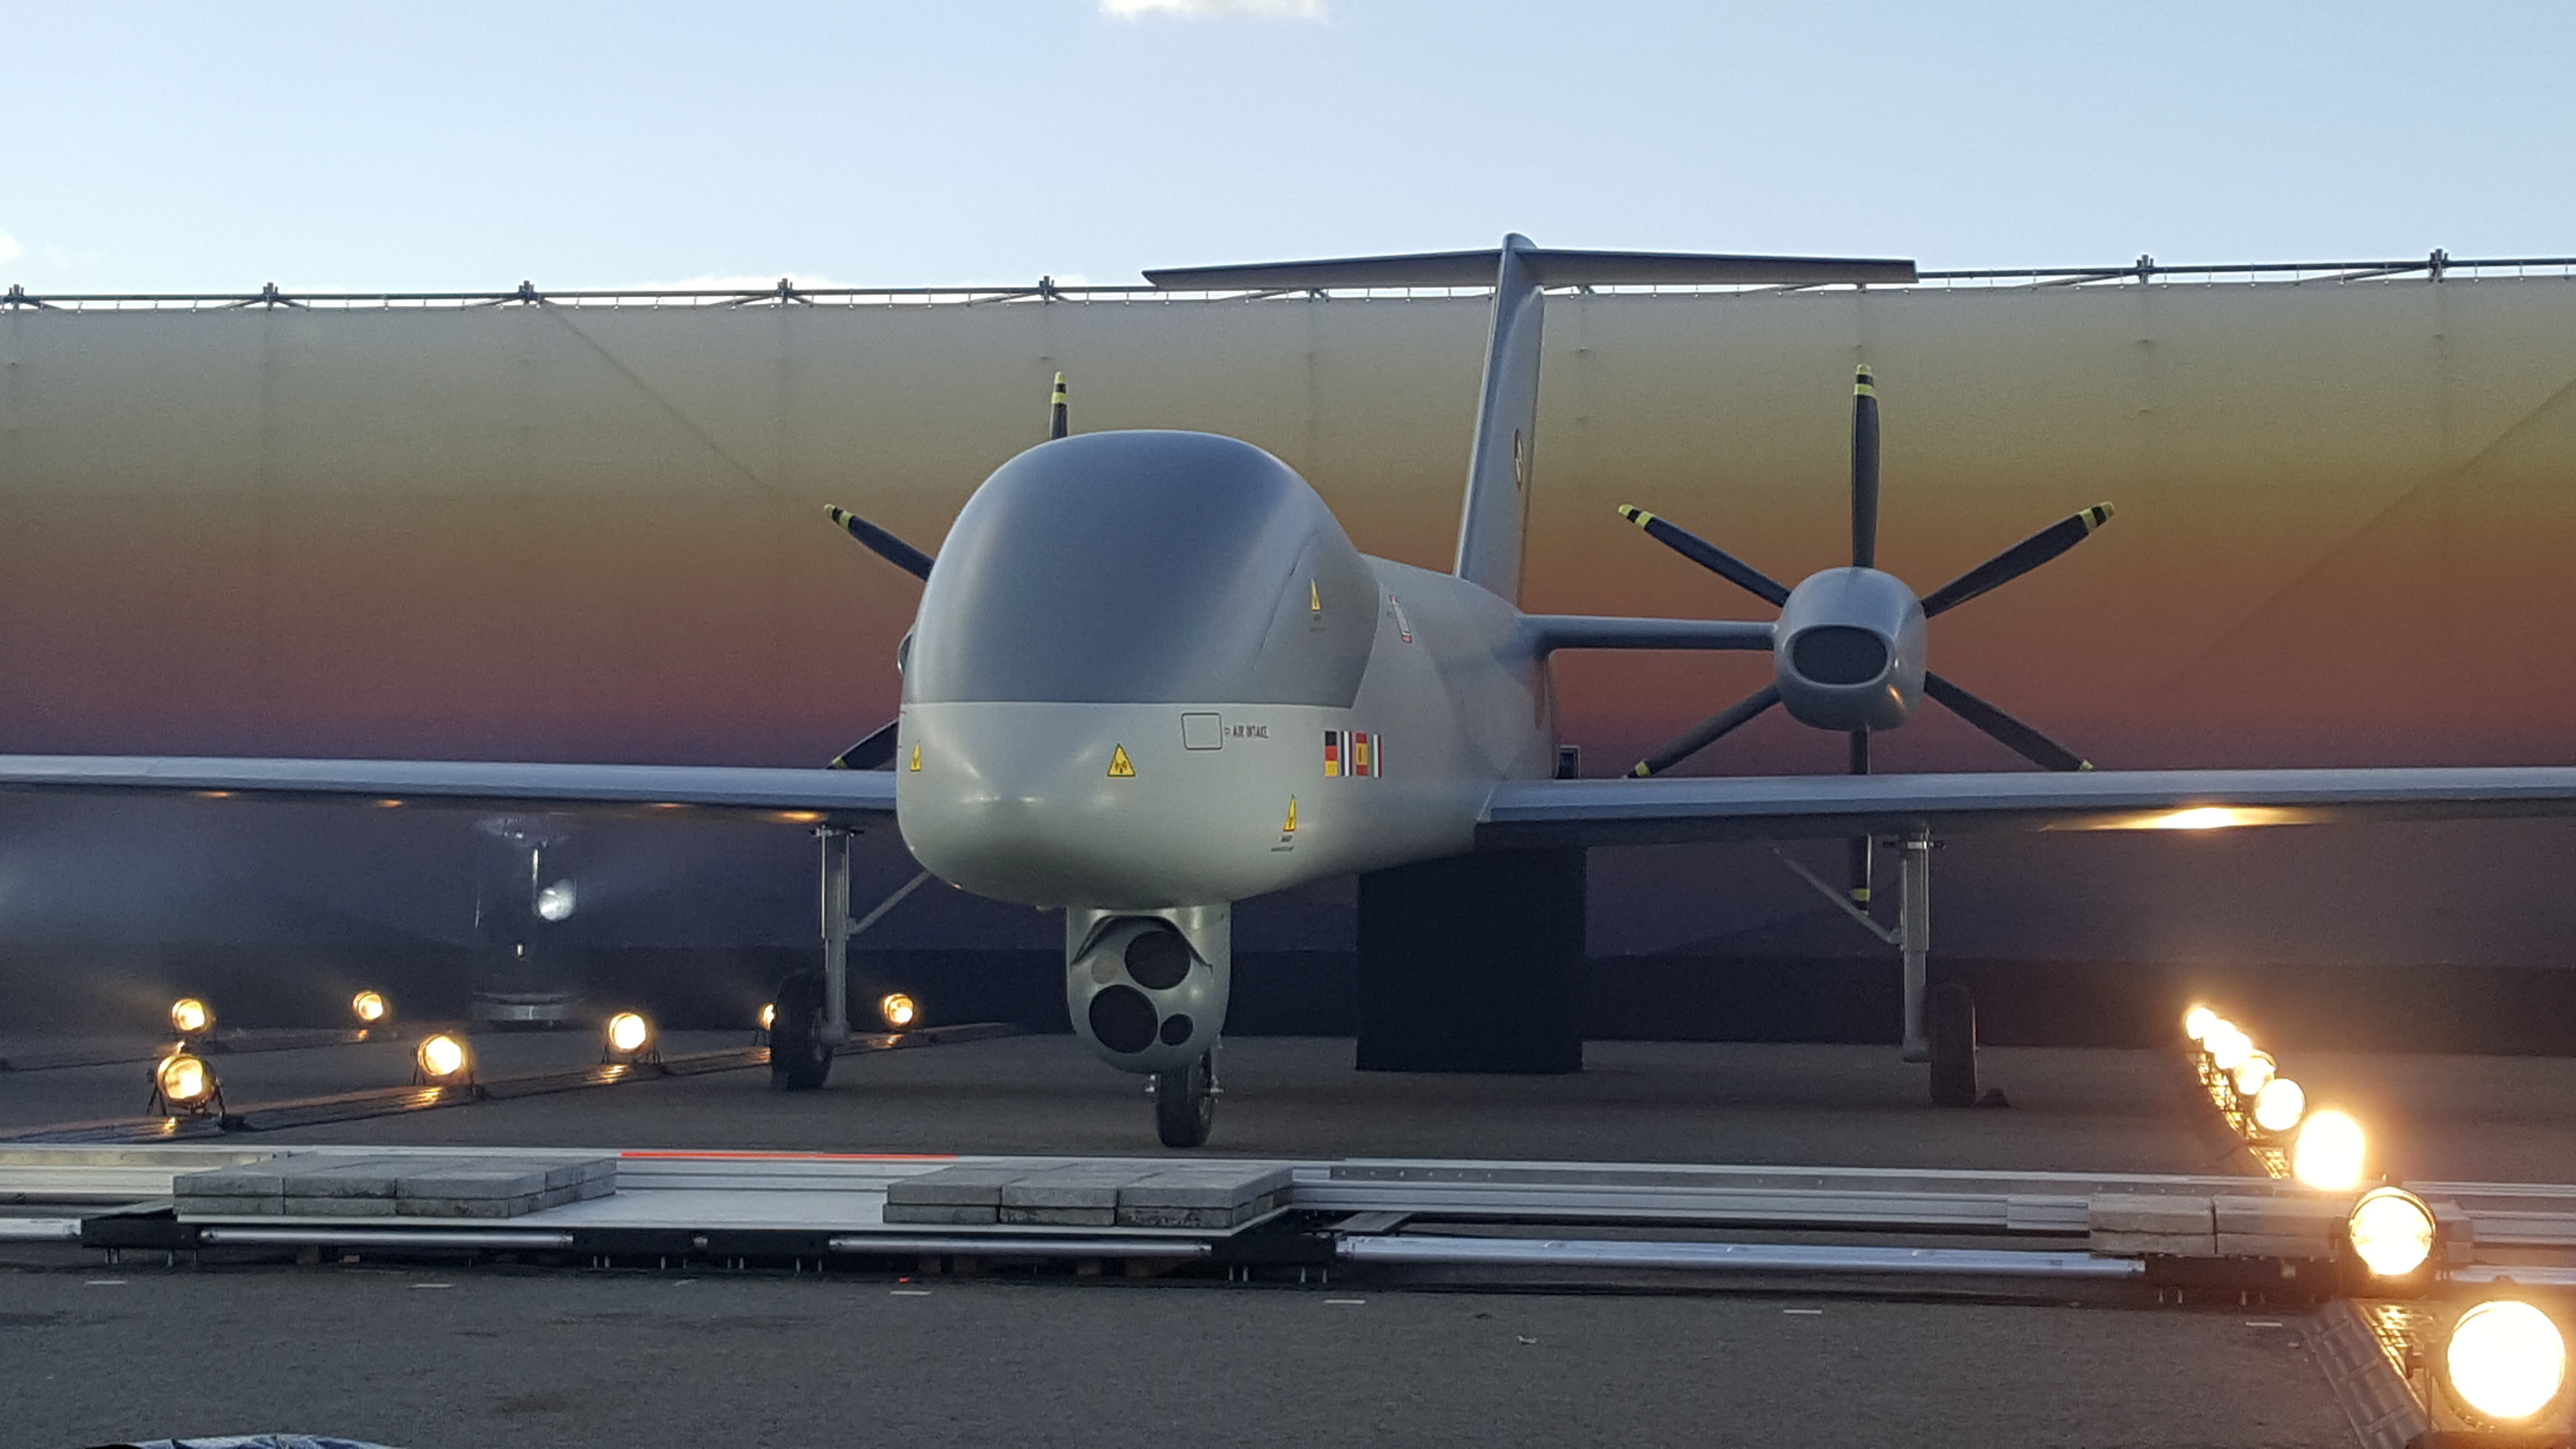 MALE RPAS Mock up unveil